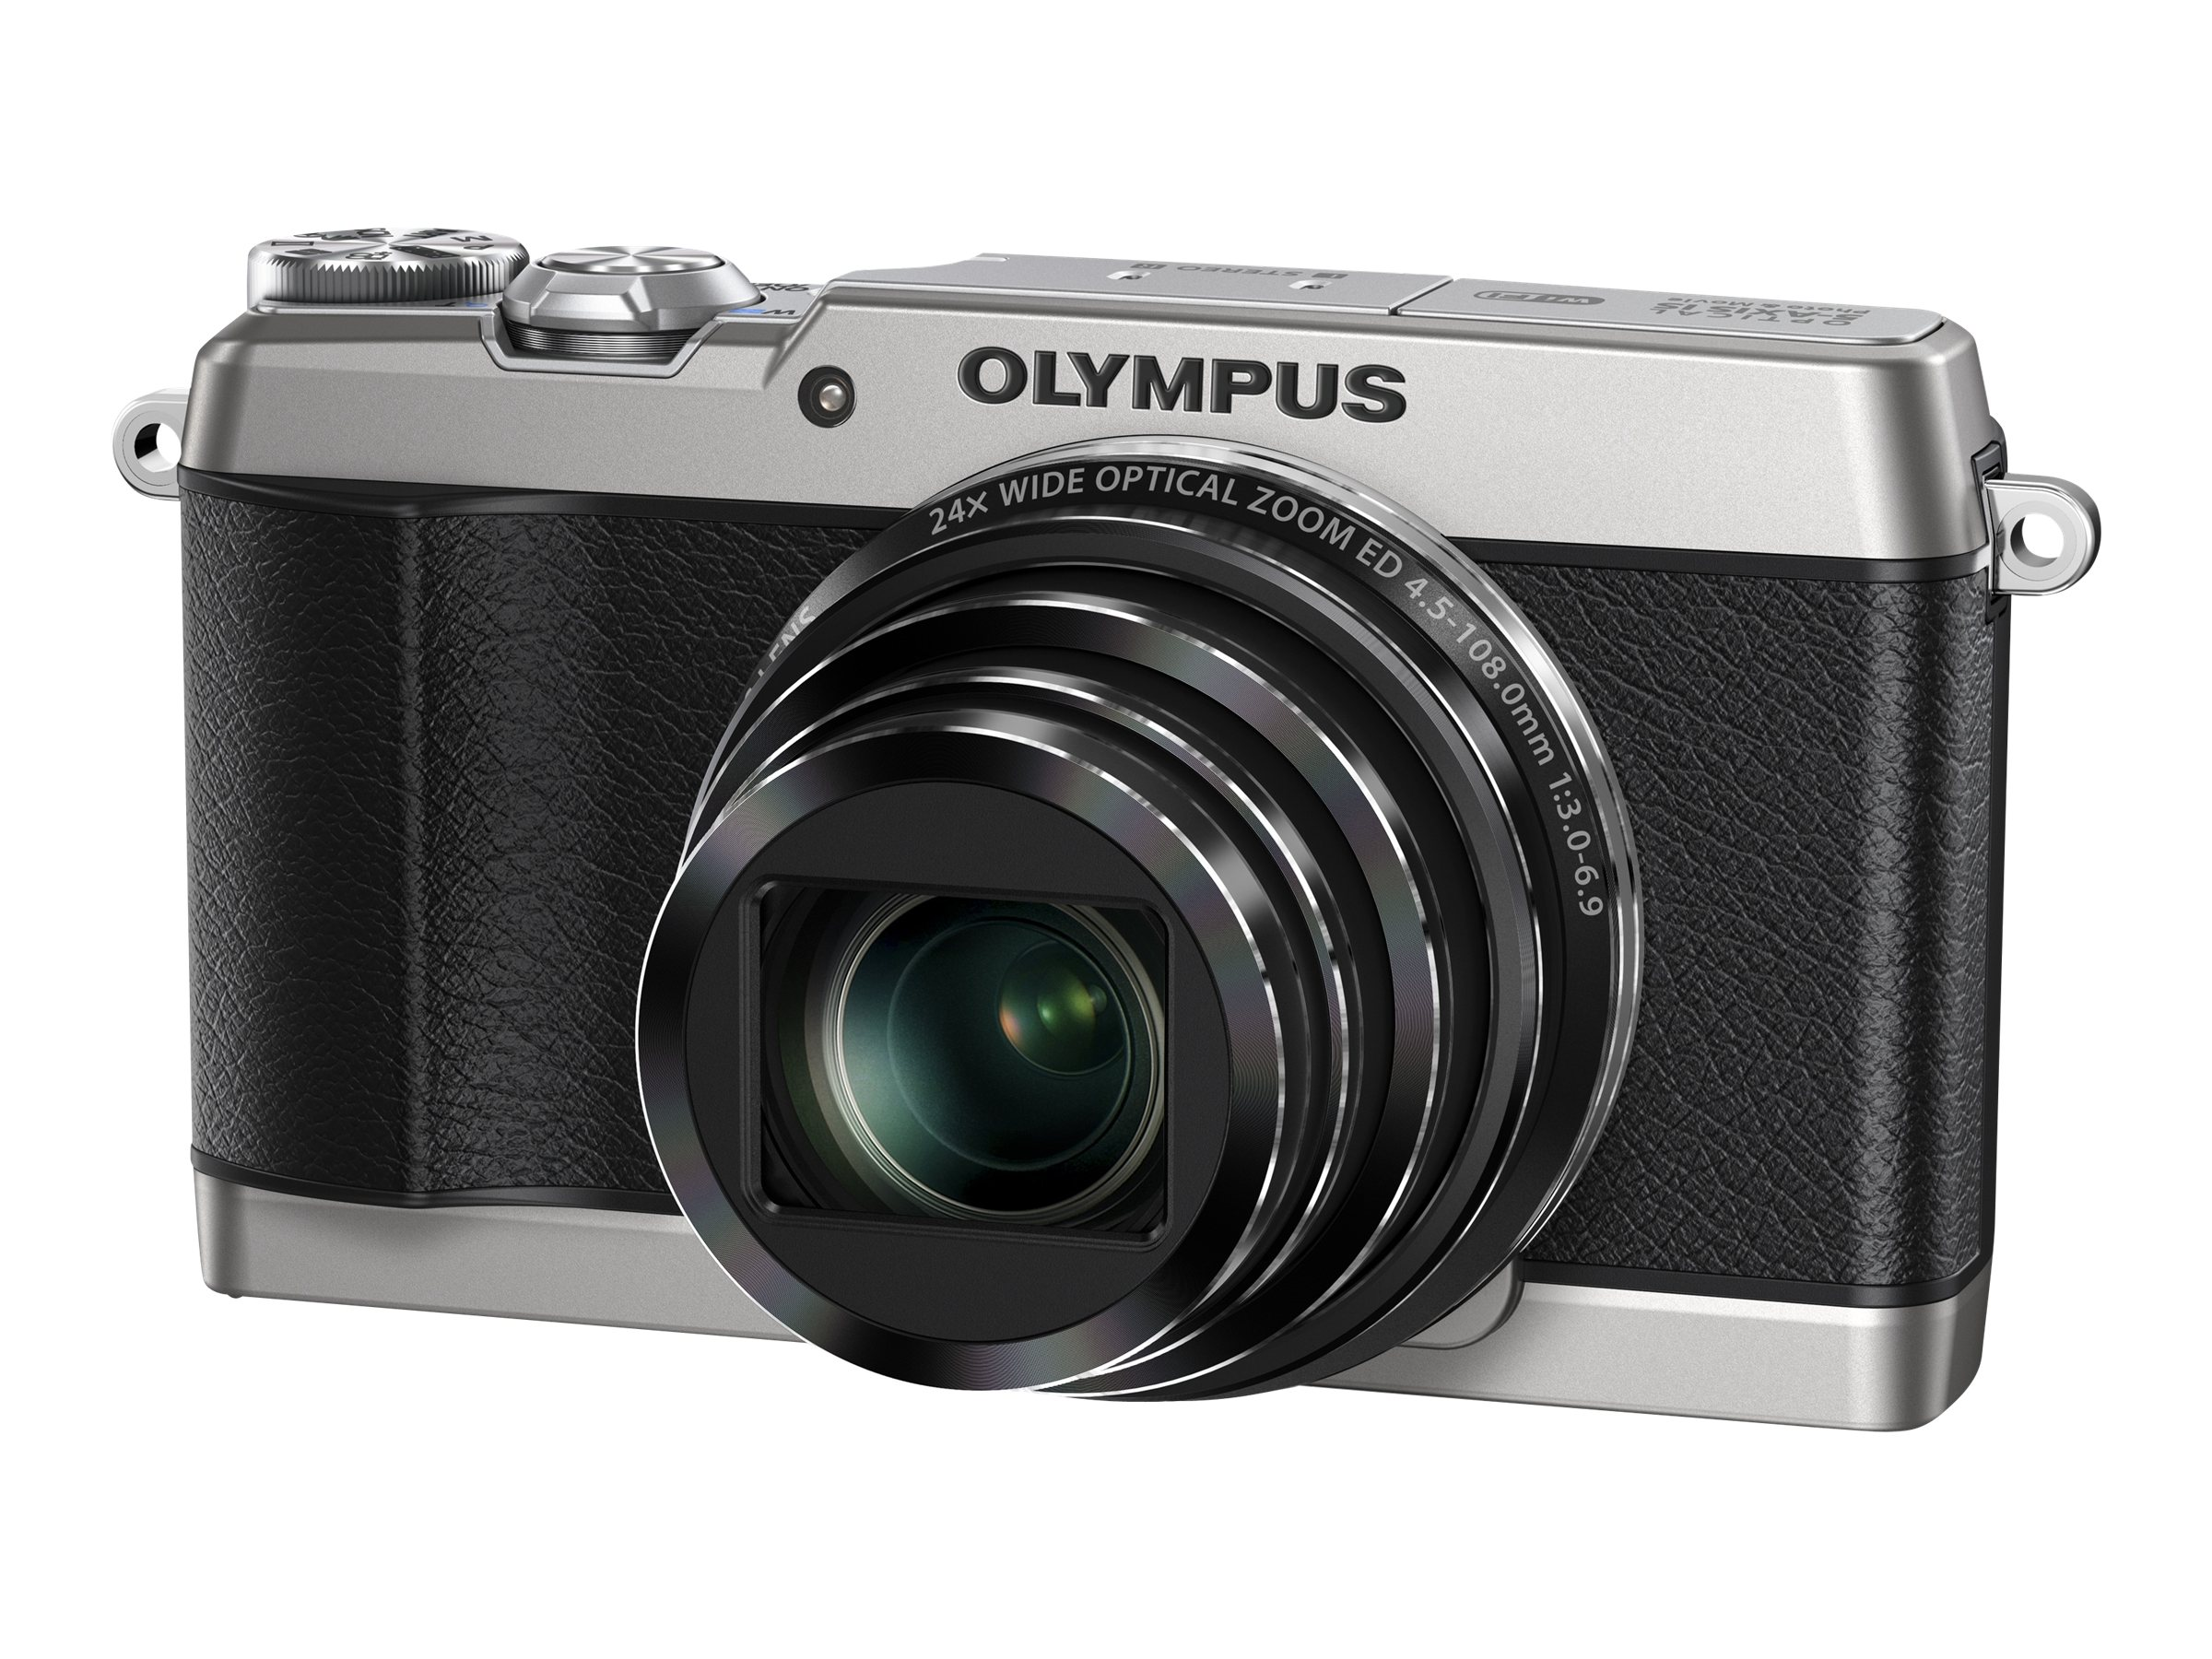 Olympus Stylus SH-1 Digital Camera, 16MP, Silver, V107080SU000, 17051699, Cameras - Digital